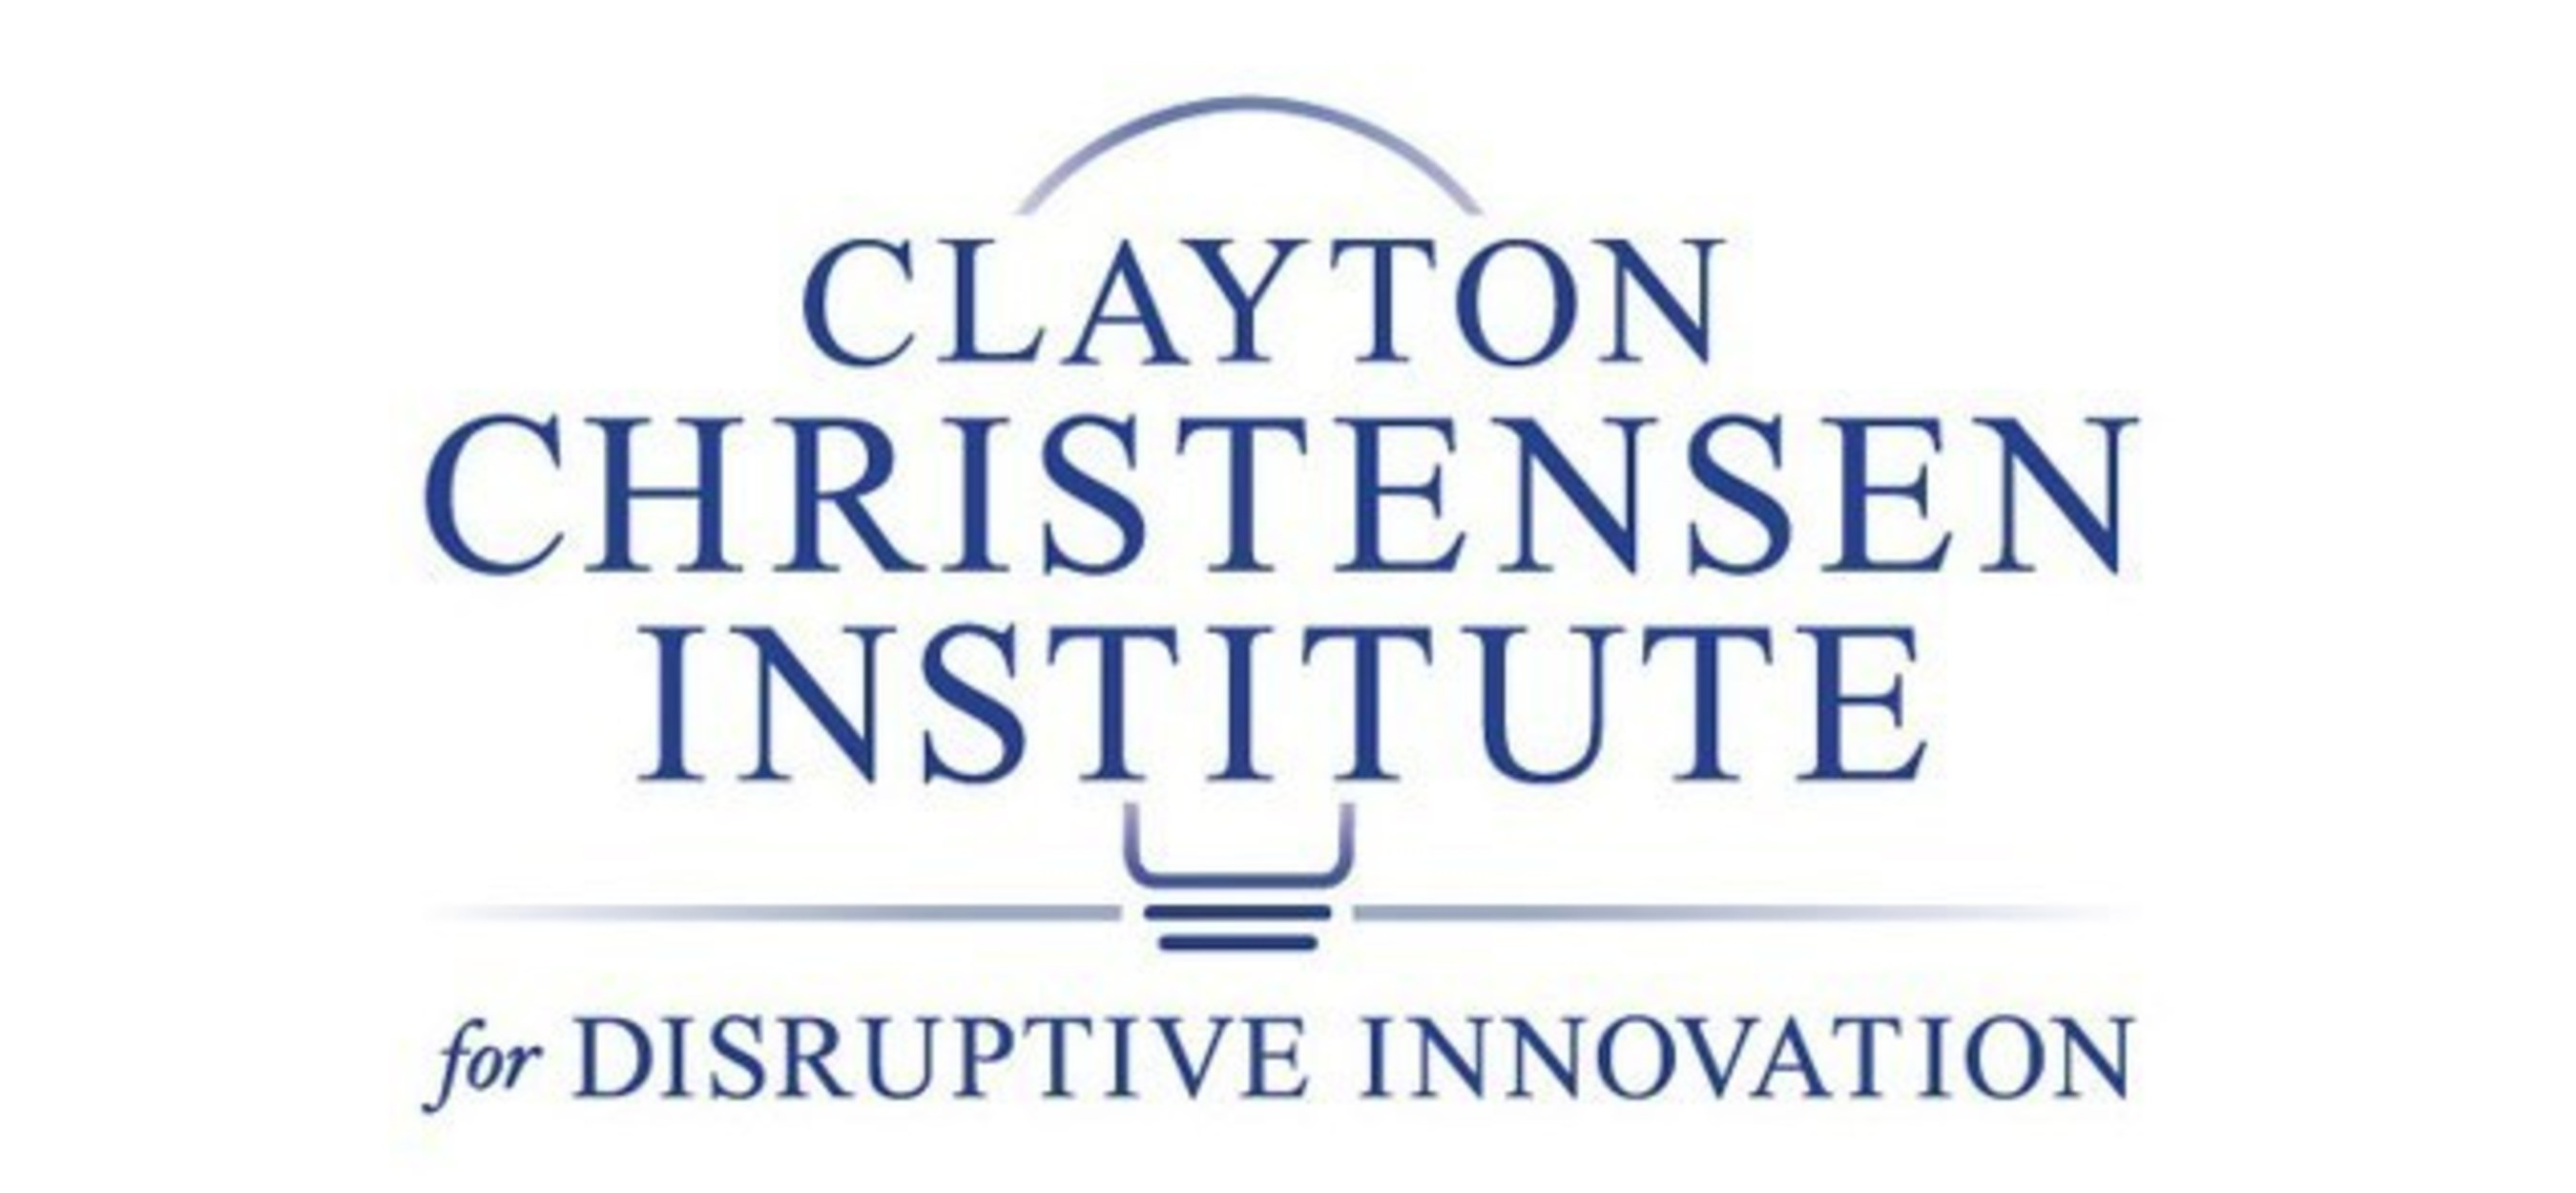 The Clayton Christensen Institute Launches New 'Social Network' of Blended Learning Programs